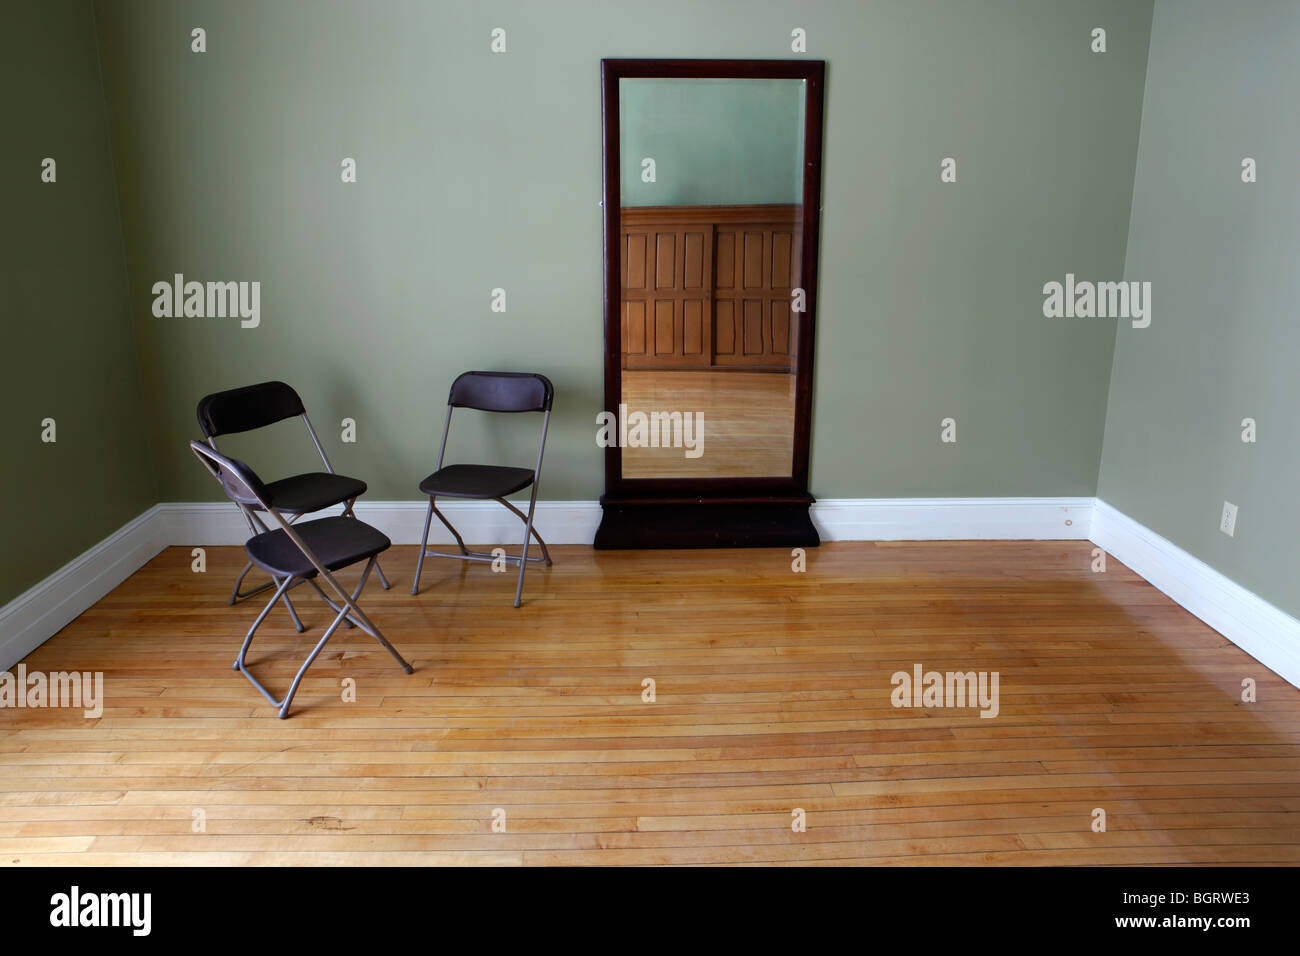 Empty chair in room - Empty Room Three Folding Chairs Mirror Wood Floors